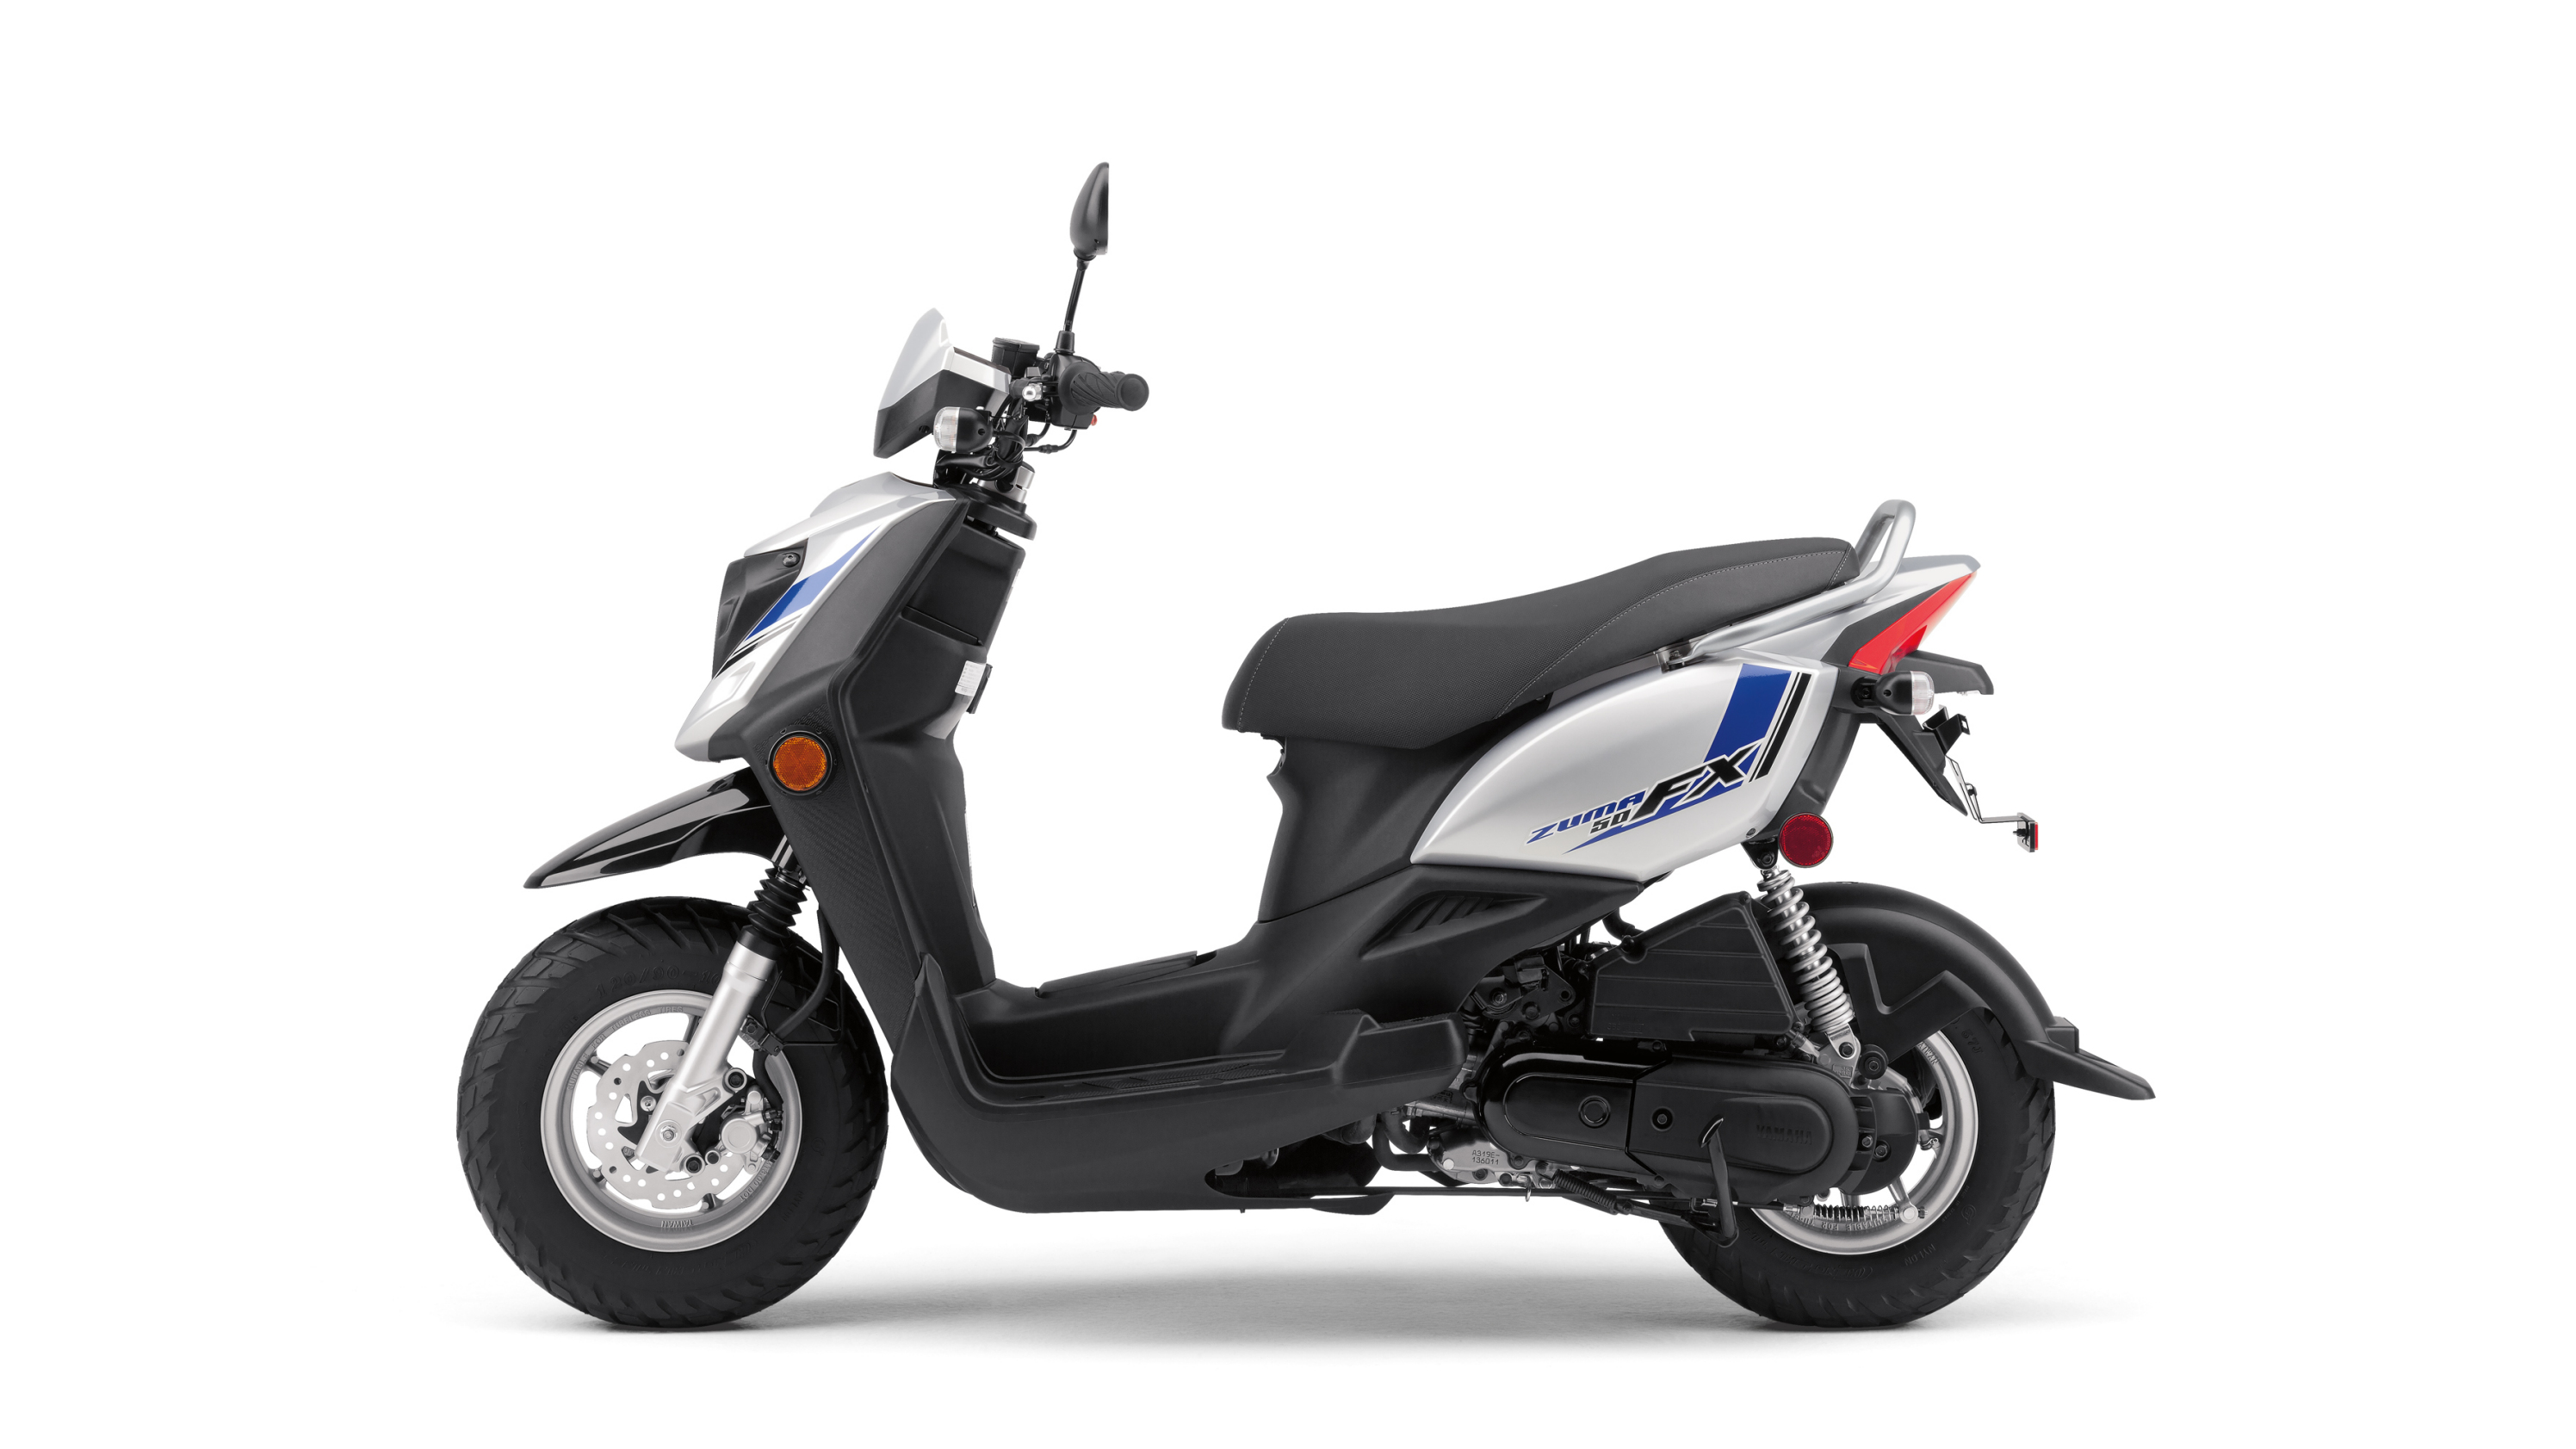 Zuma 50f Wiring Diagram Library 50cc Scooter Engine Furthermore Yamaha 50 Additionally 2016 2018 50fx Top Speed